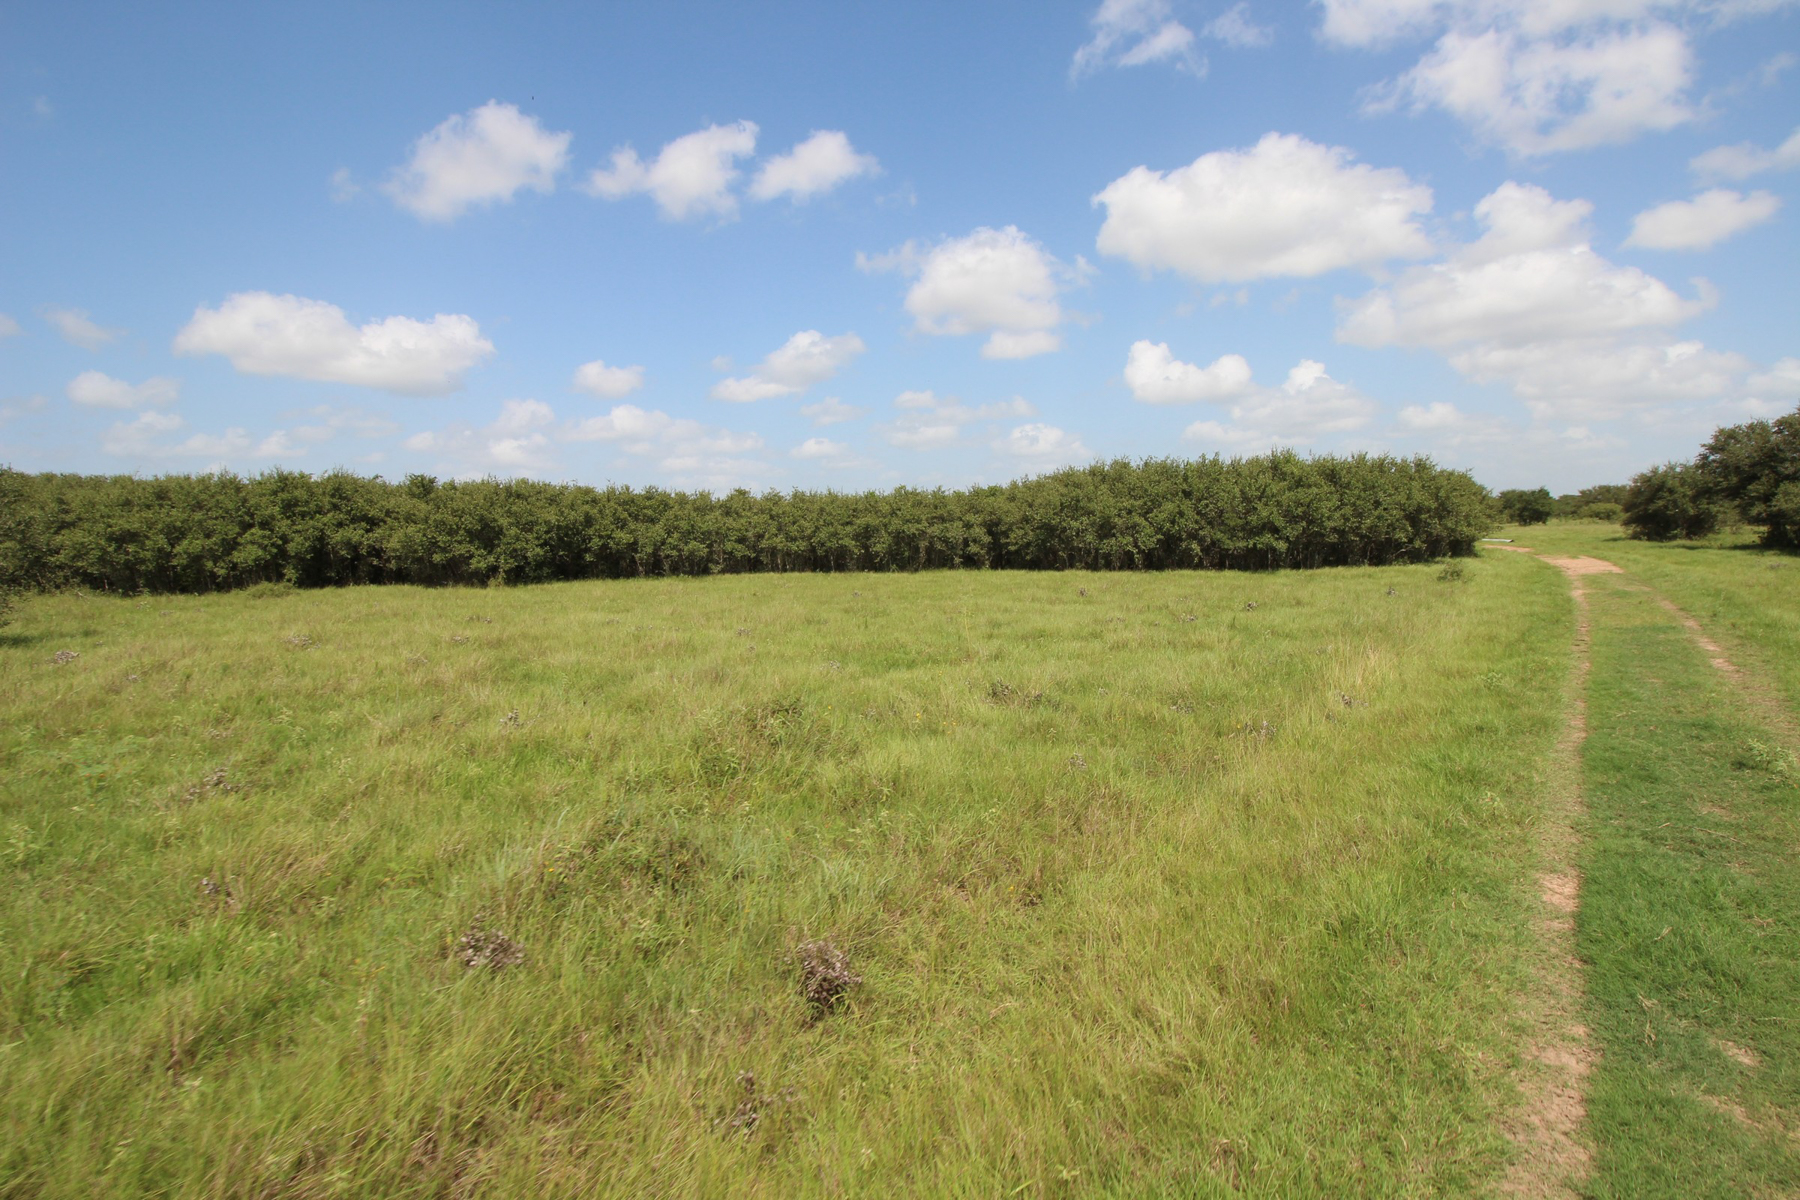 Additional photo for property listing at 894+- Acrew Tri-County Ranch 894+- AC  Tri-County Ranch ou Victoria, Texas 77901 Estados Unidos